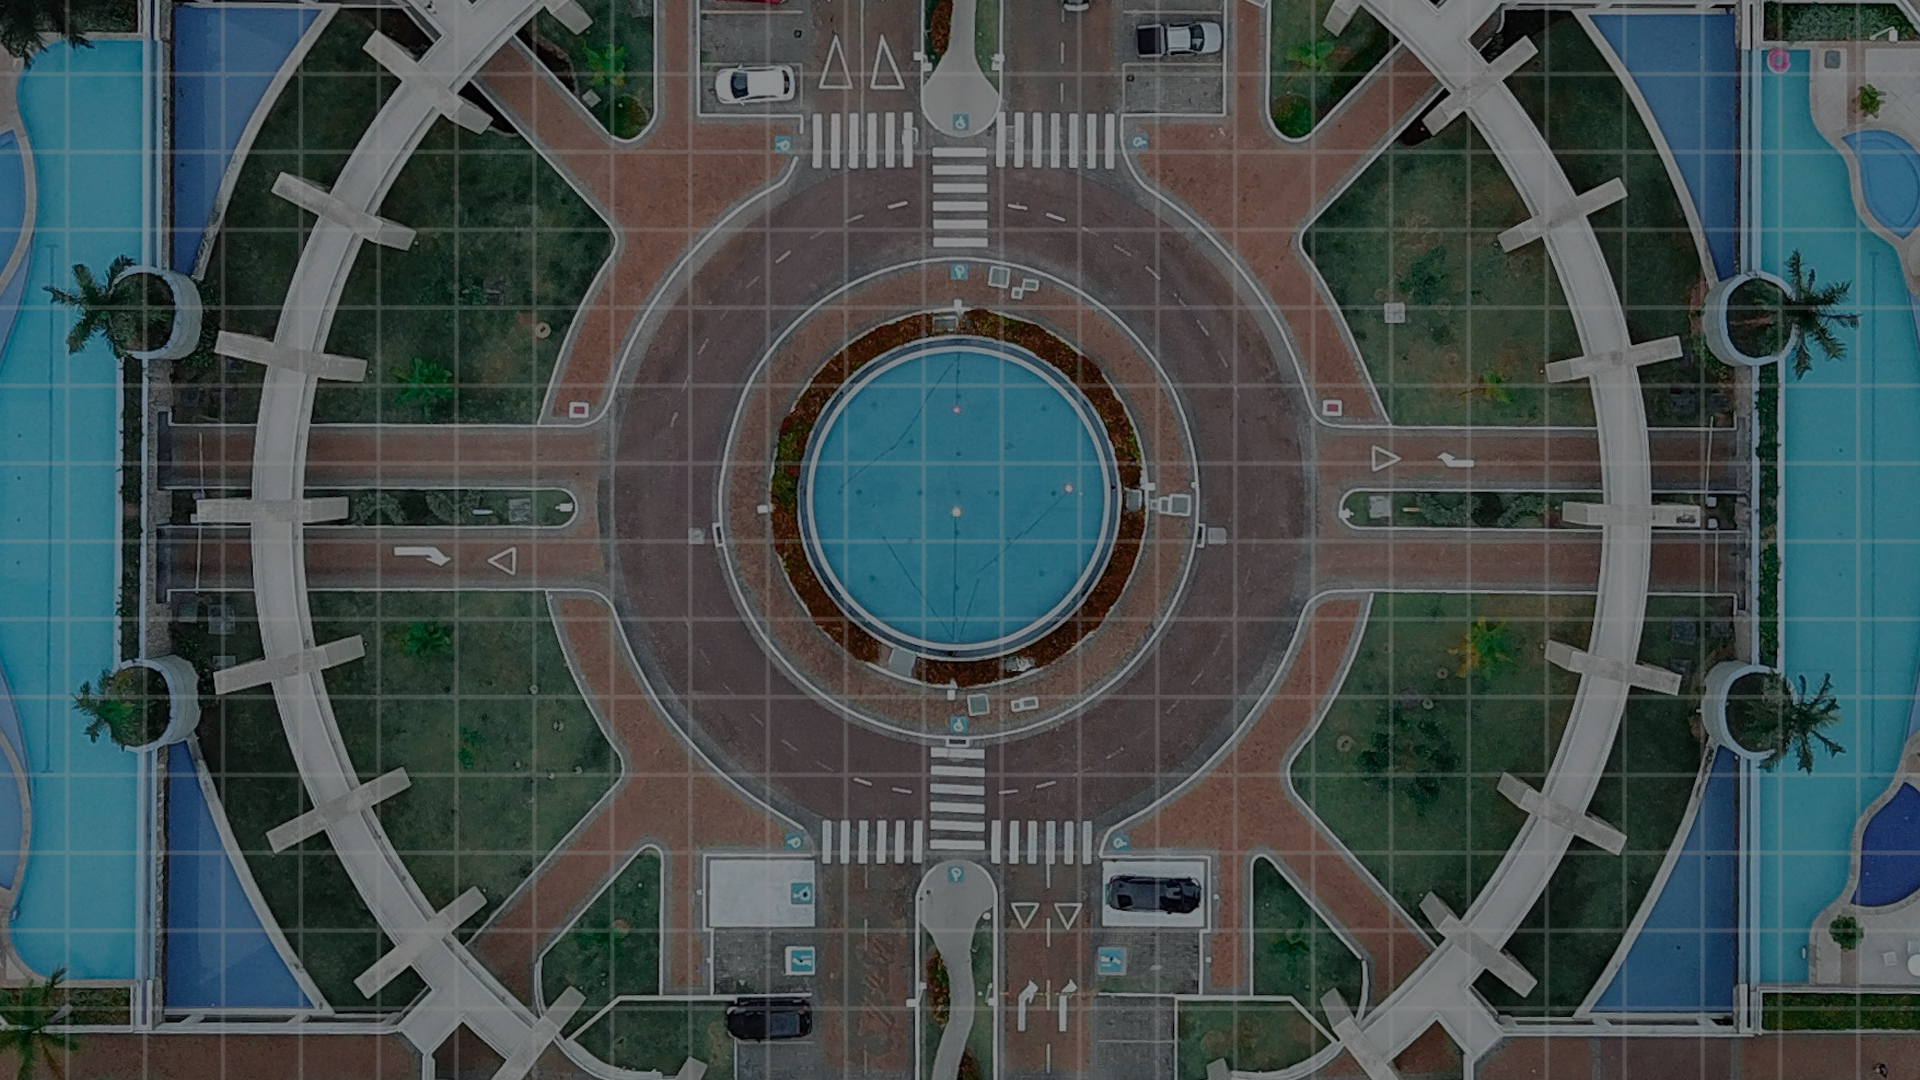 birds eye view of a roundabout with pond in the middle